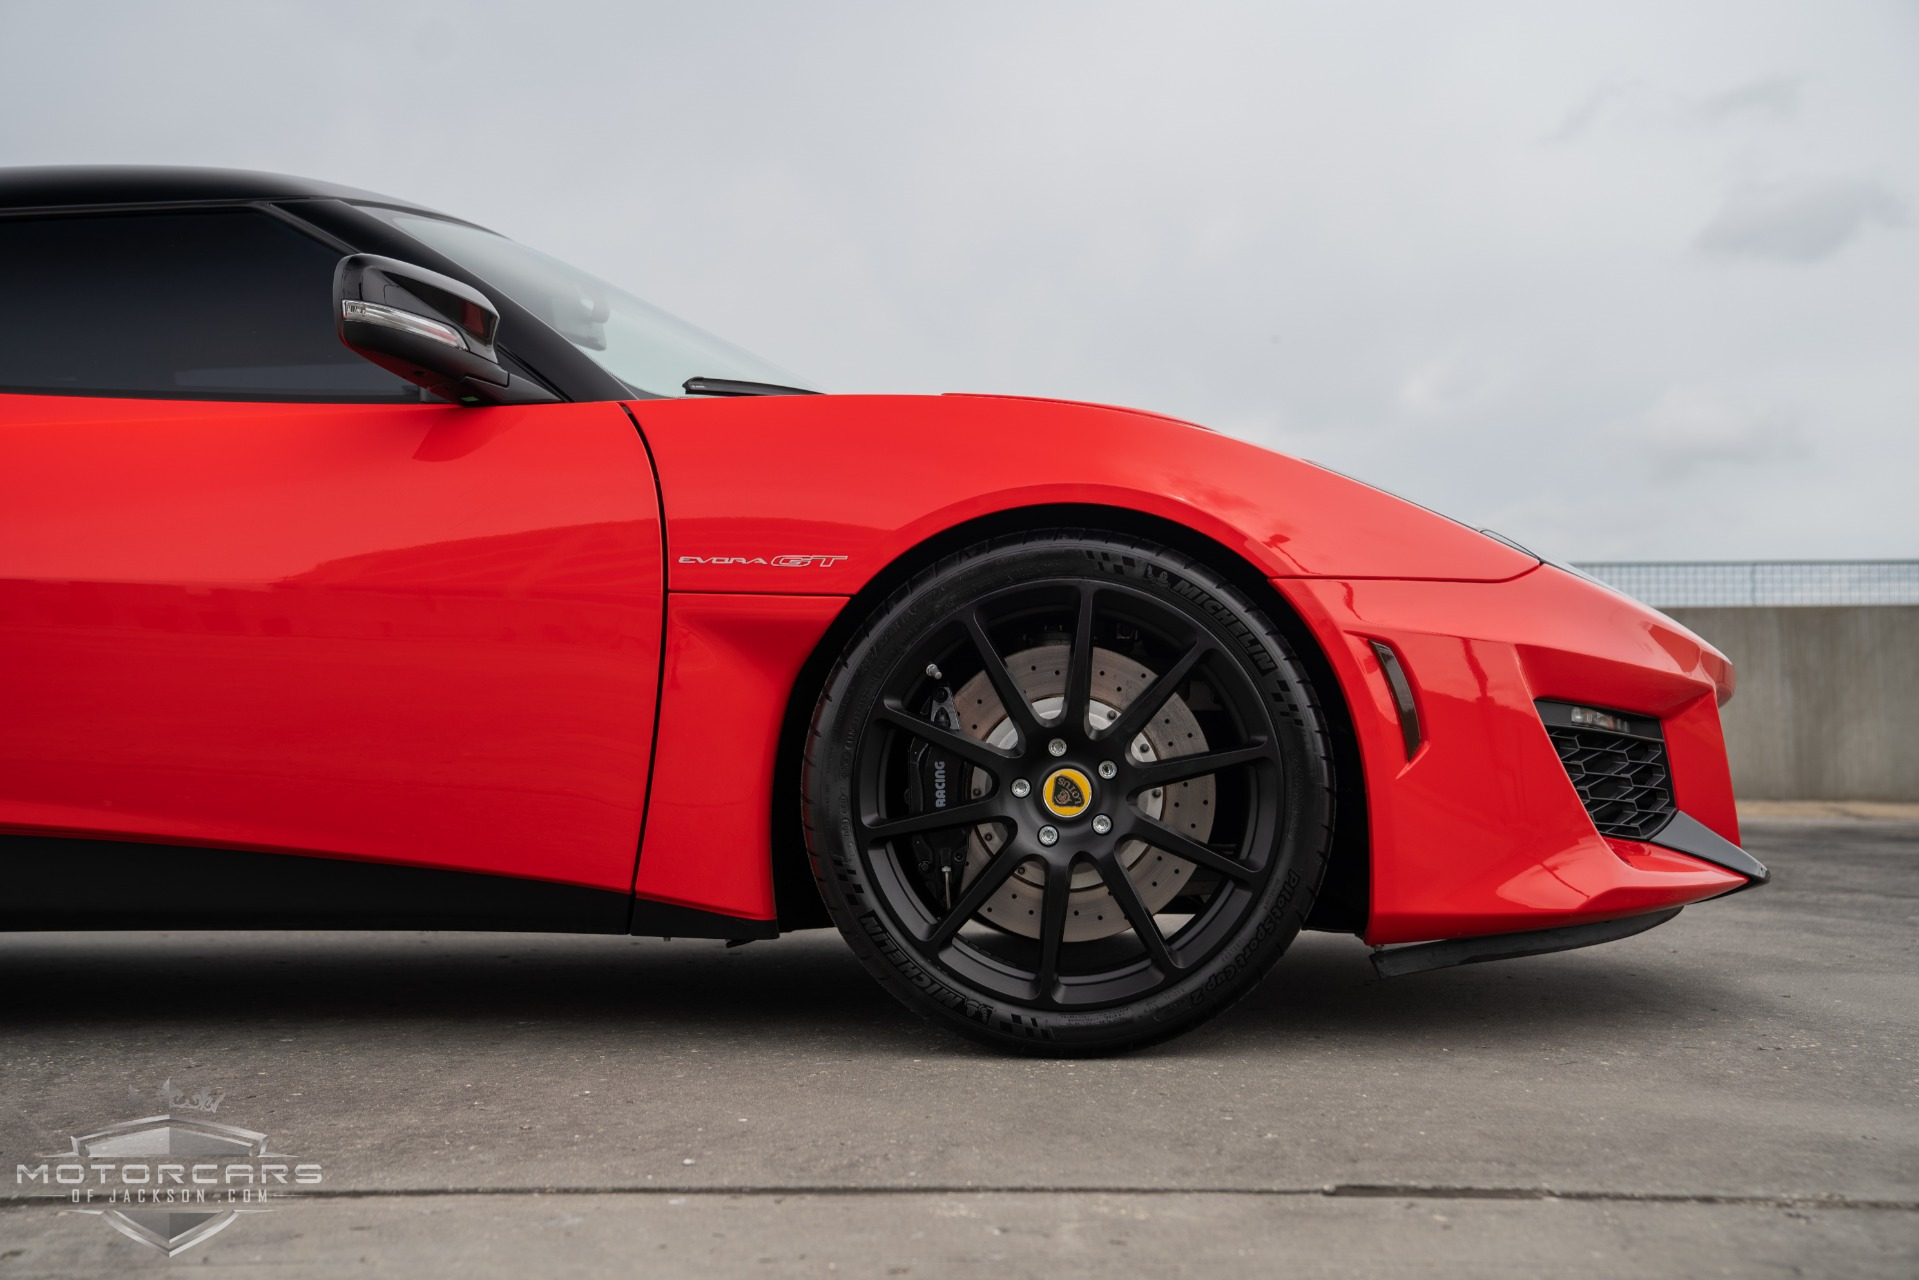 Used-2020-Lotus-Evora-GT-for-sale-Jackson-MS